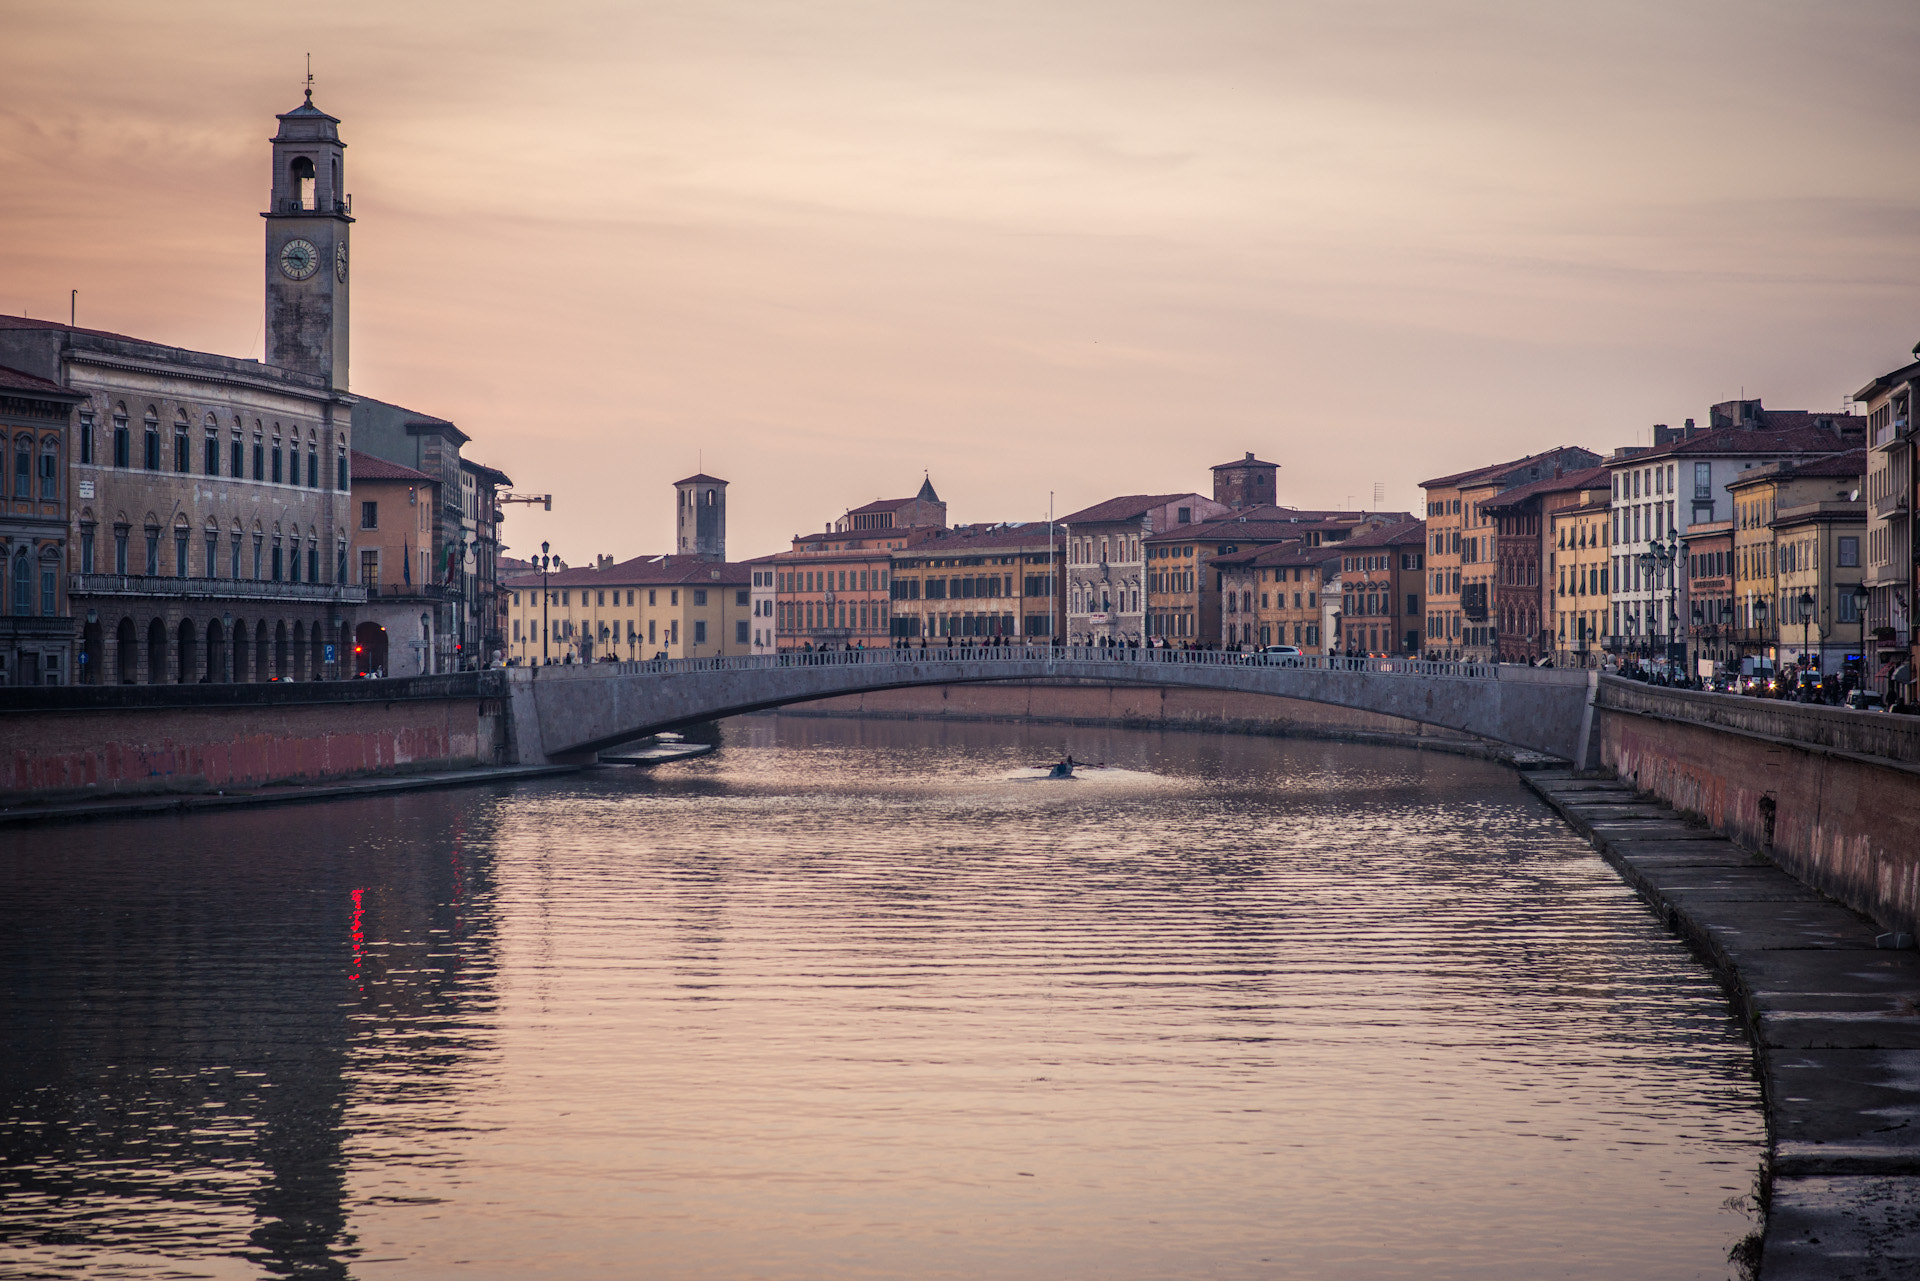 Photograph Ponte di Mezzo by Vaidas Mišeikis on 500px